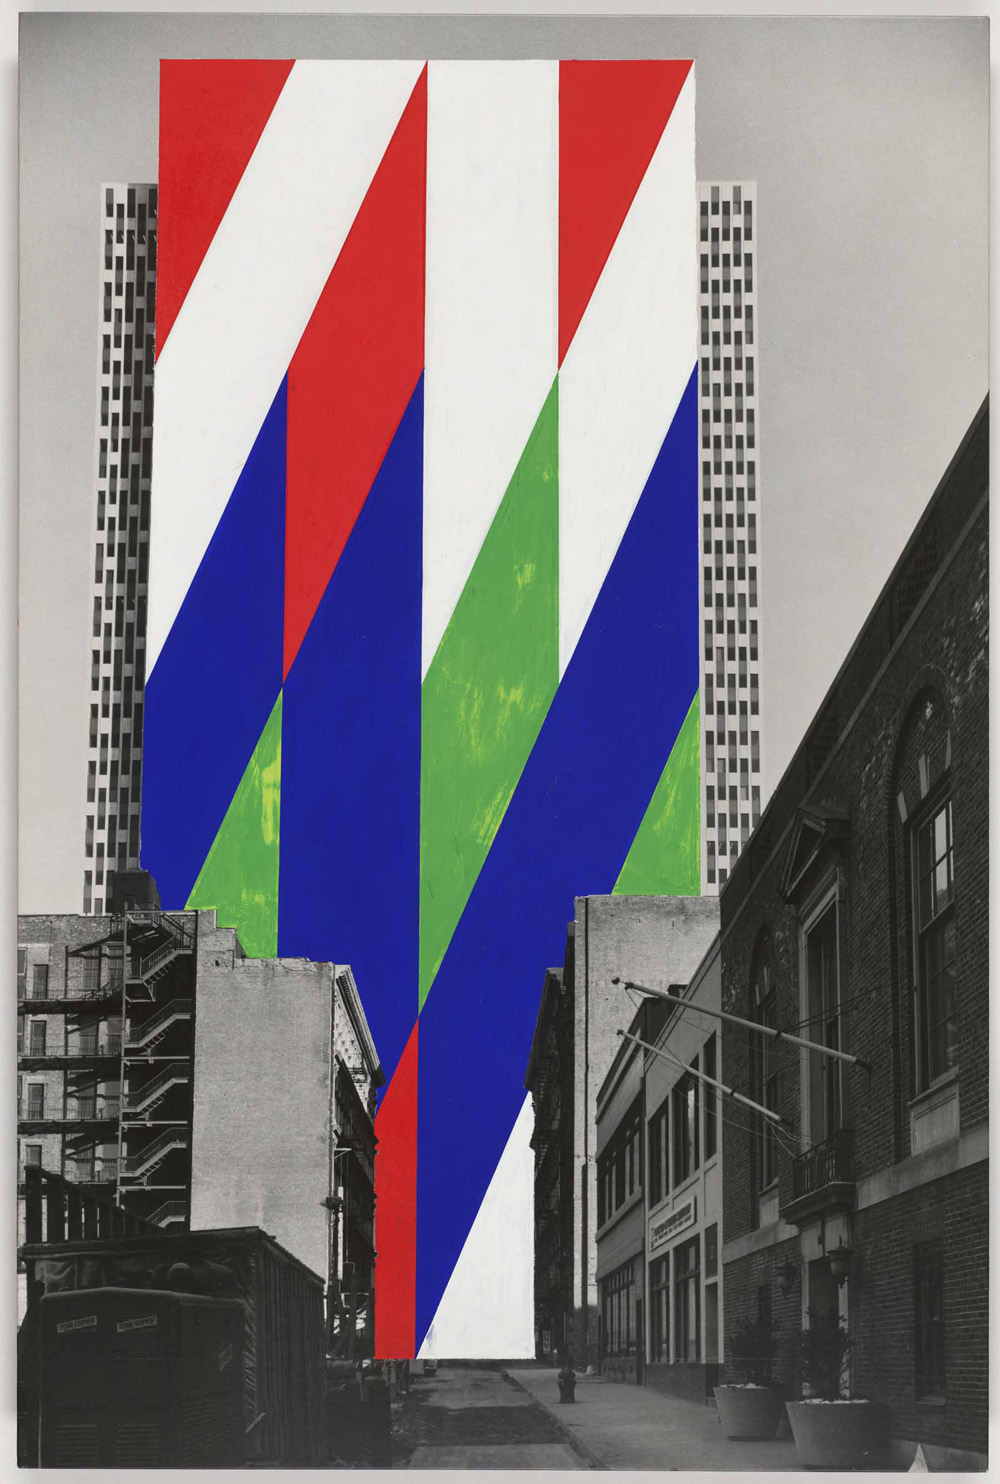 Jason Crum (American, 1935-2004). Project for a Painted Wall, New York City, New York. Perspective. 1969. Gouache on photograph. 30 x 20 (76.2 x 50.8 cm). The Museum of Modern Art, New York. Purchase, 1969